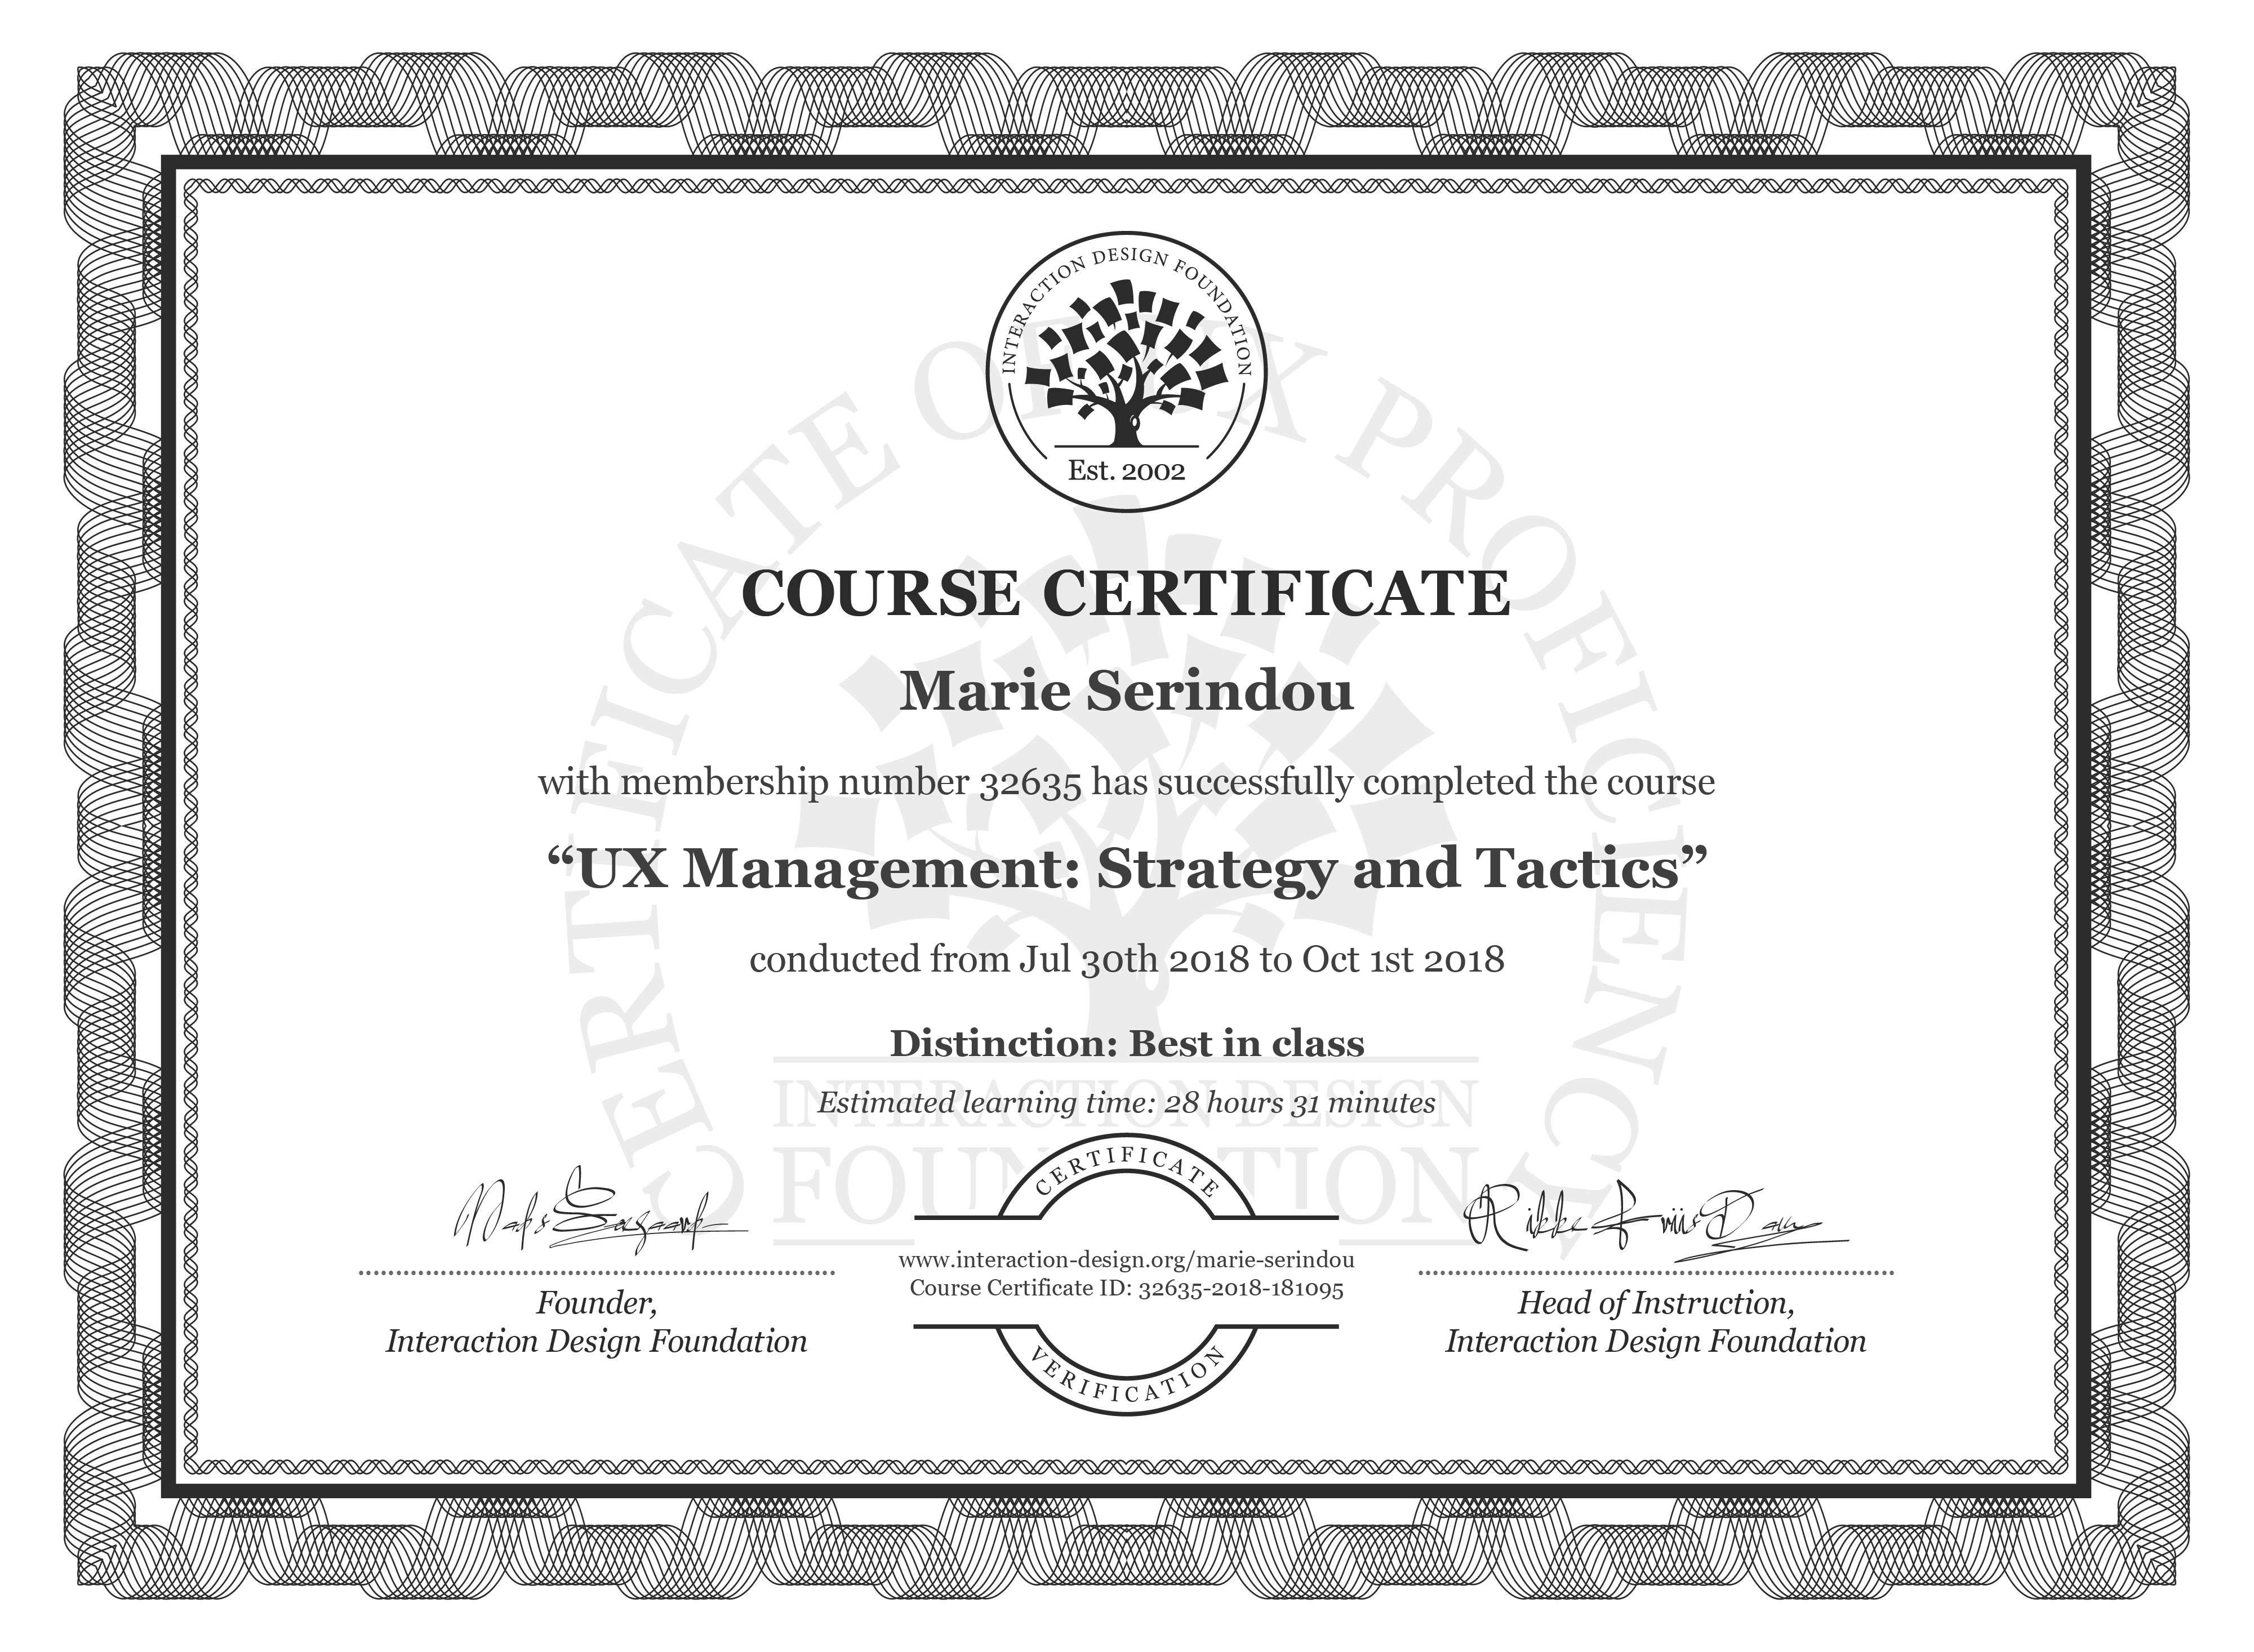 Marie Serindou's Course Certificate: UX Management: Strategy and Tactics